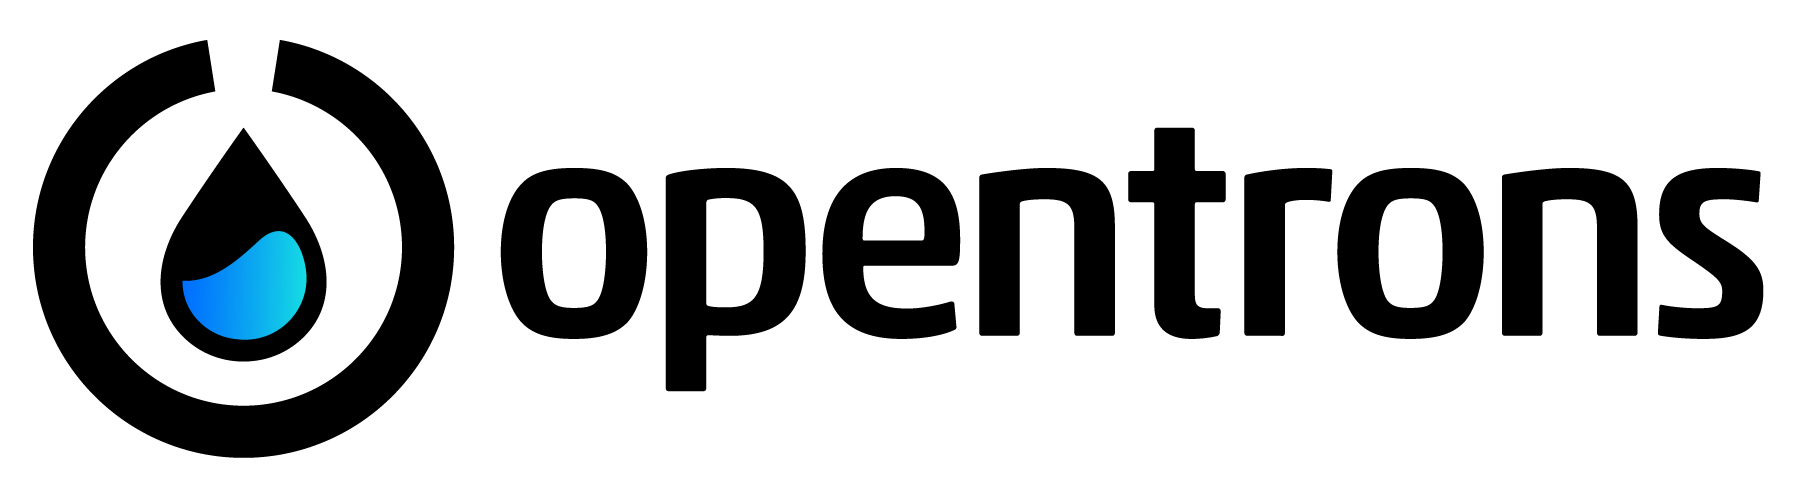 Copy of opentrons_logo